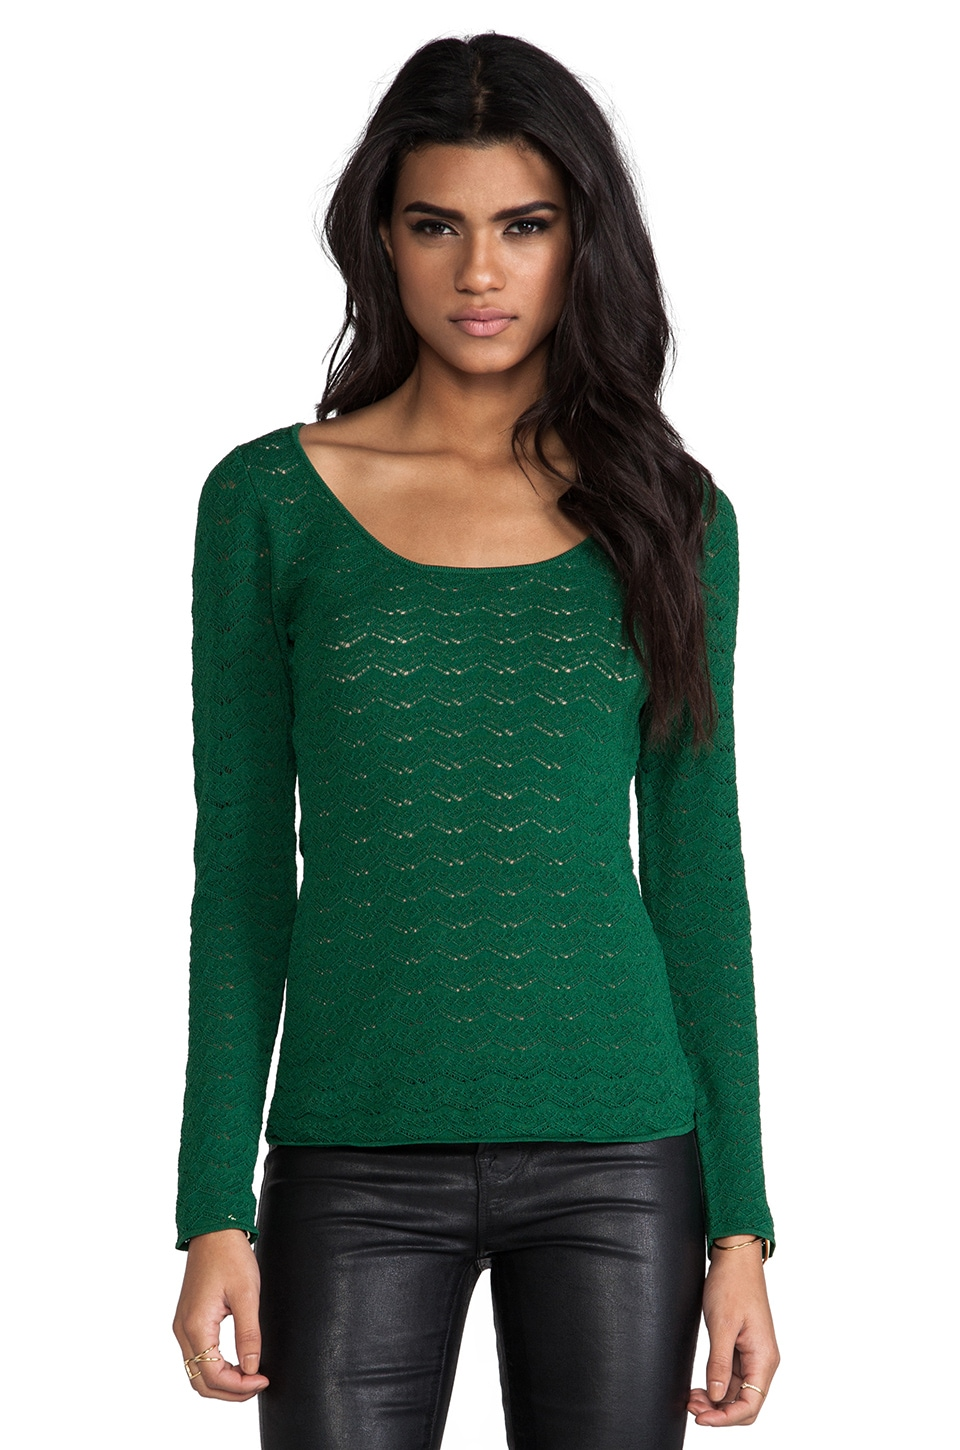 Catherine Malandrino Abbey Pointelle Top in Pine